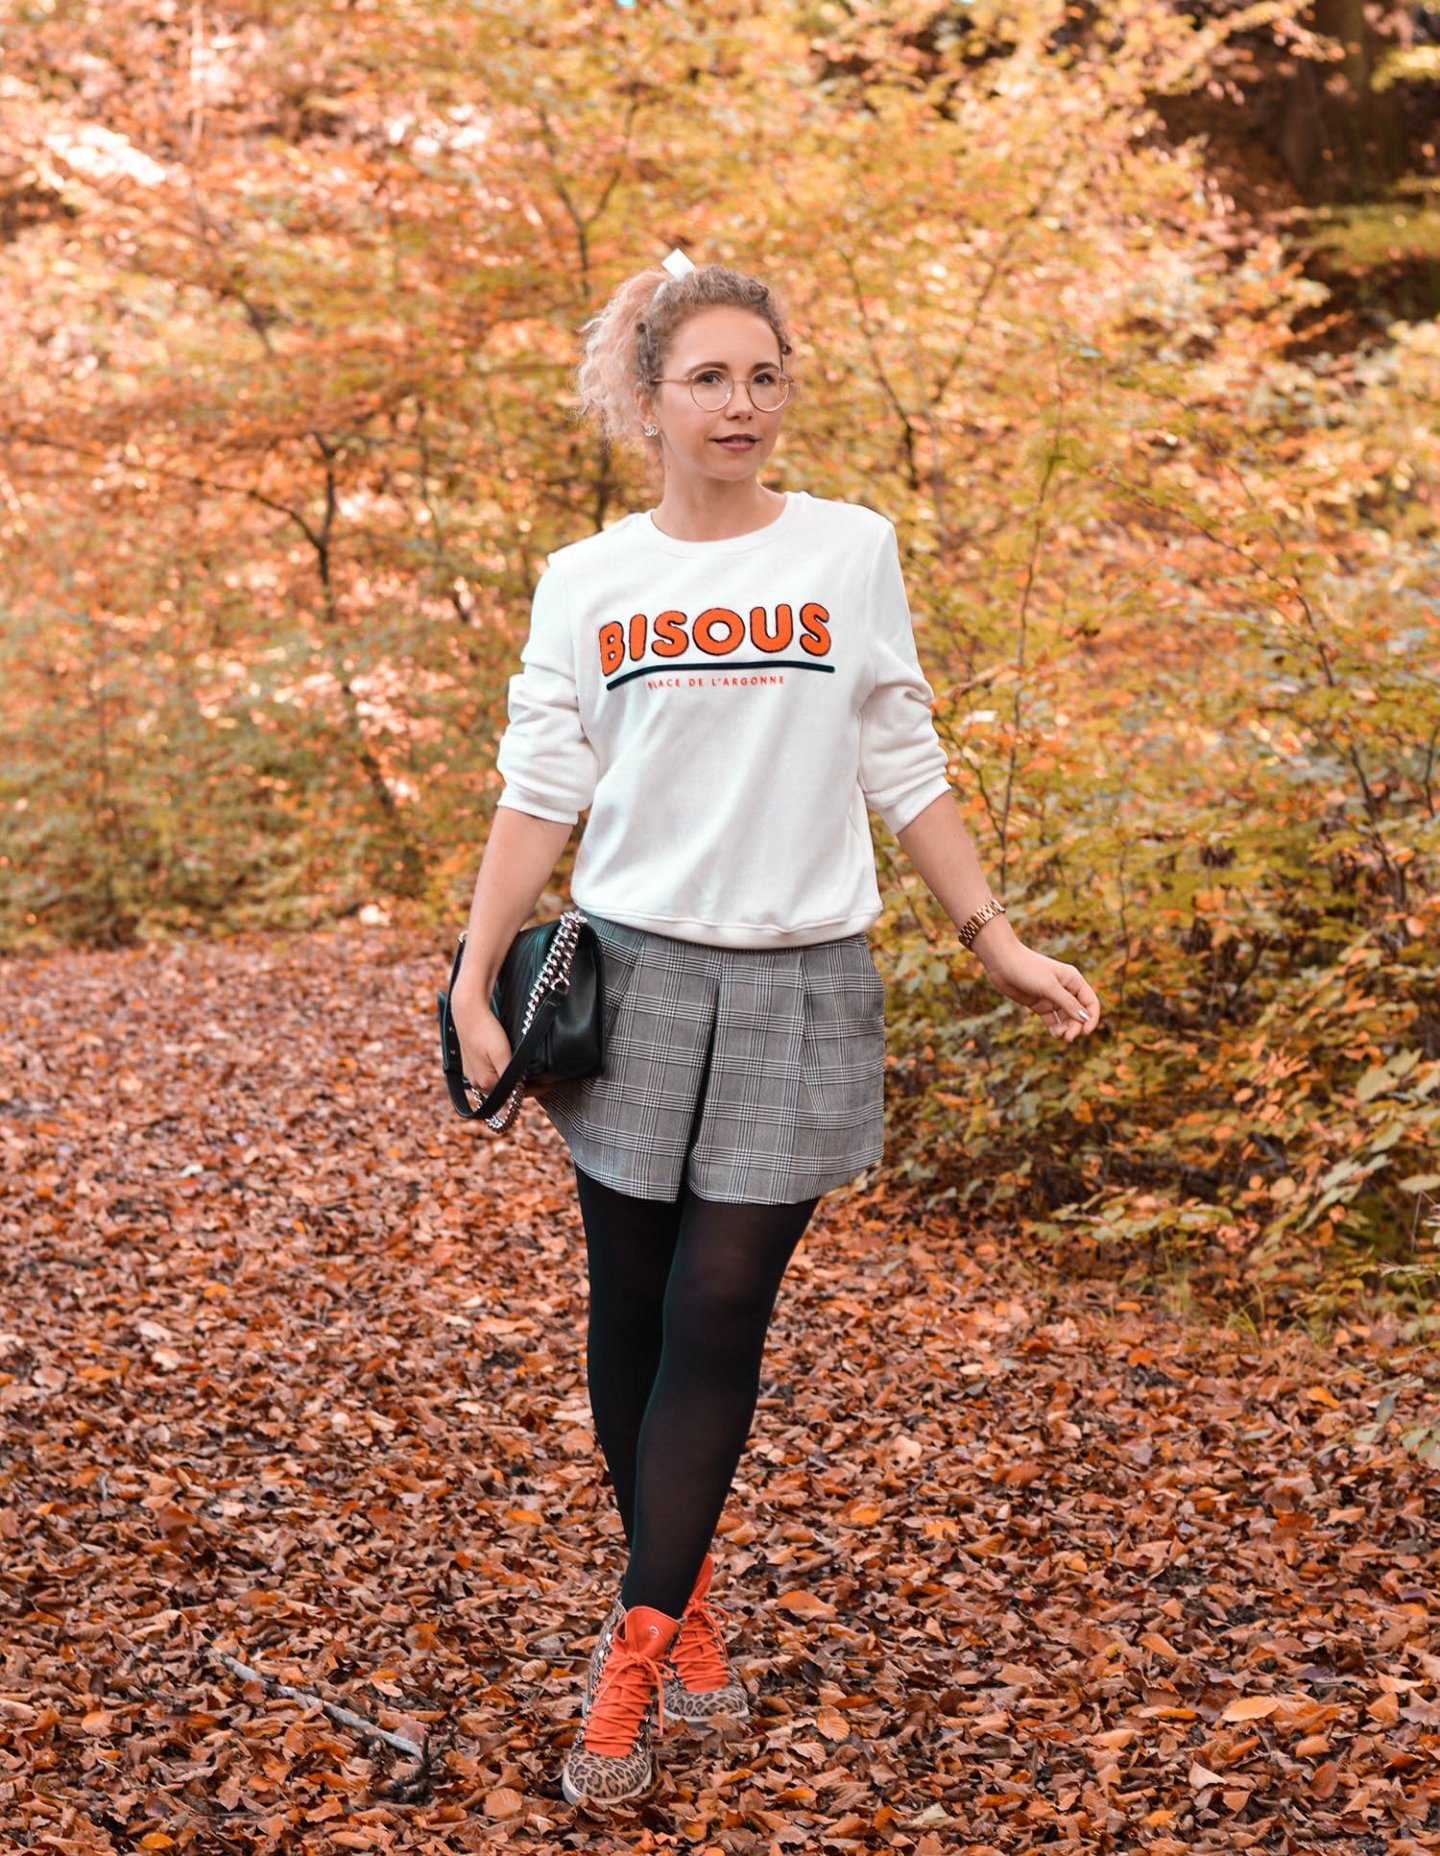 Statement Sweatshirt mit Bisous Print, Skorts, Chanel Boy Bag und Leo-Boots